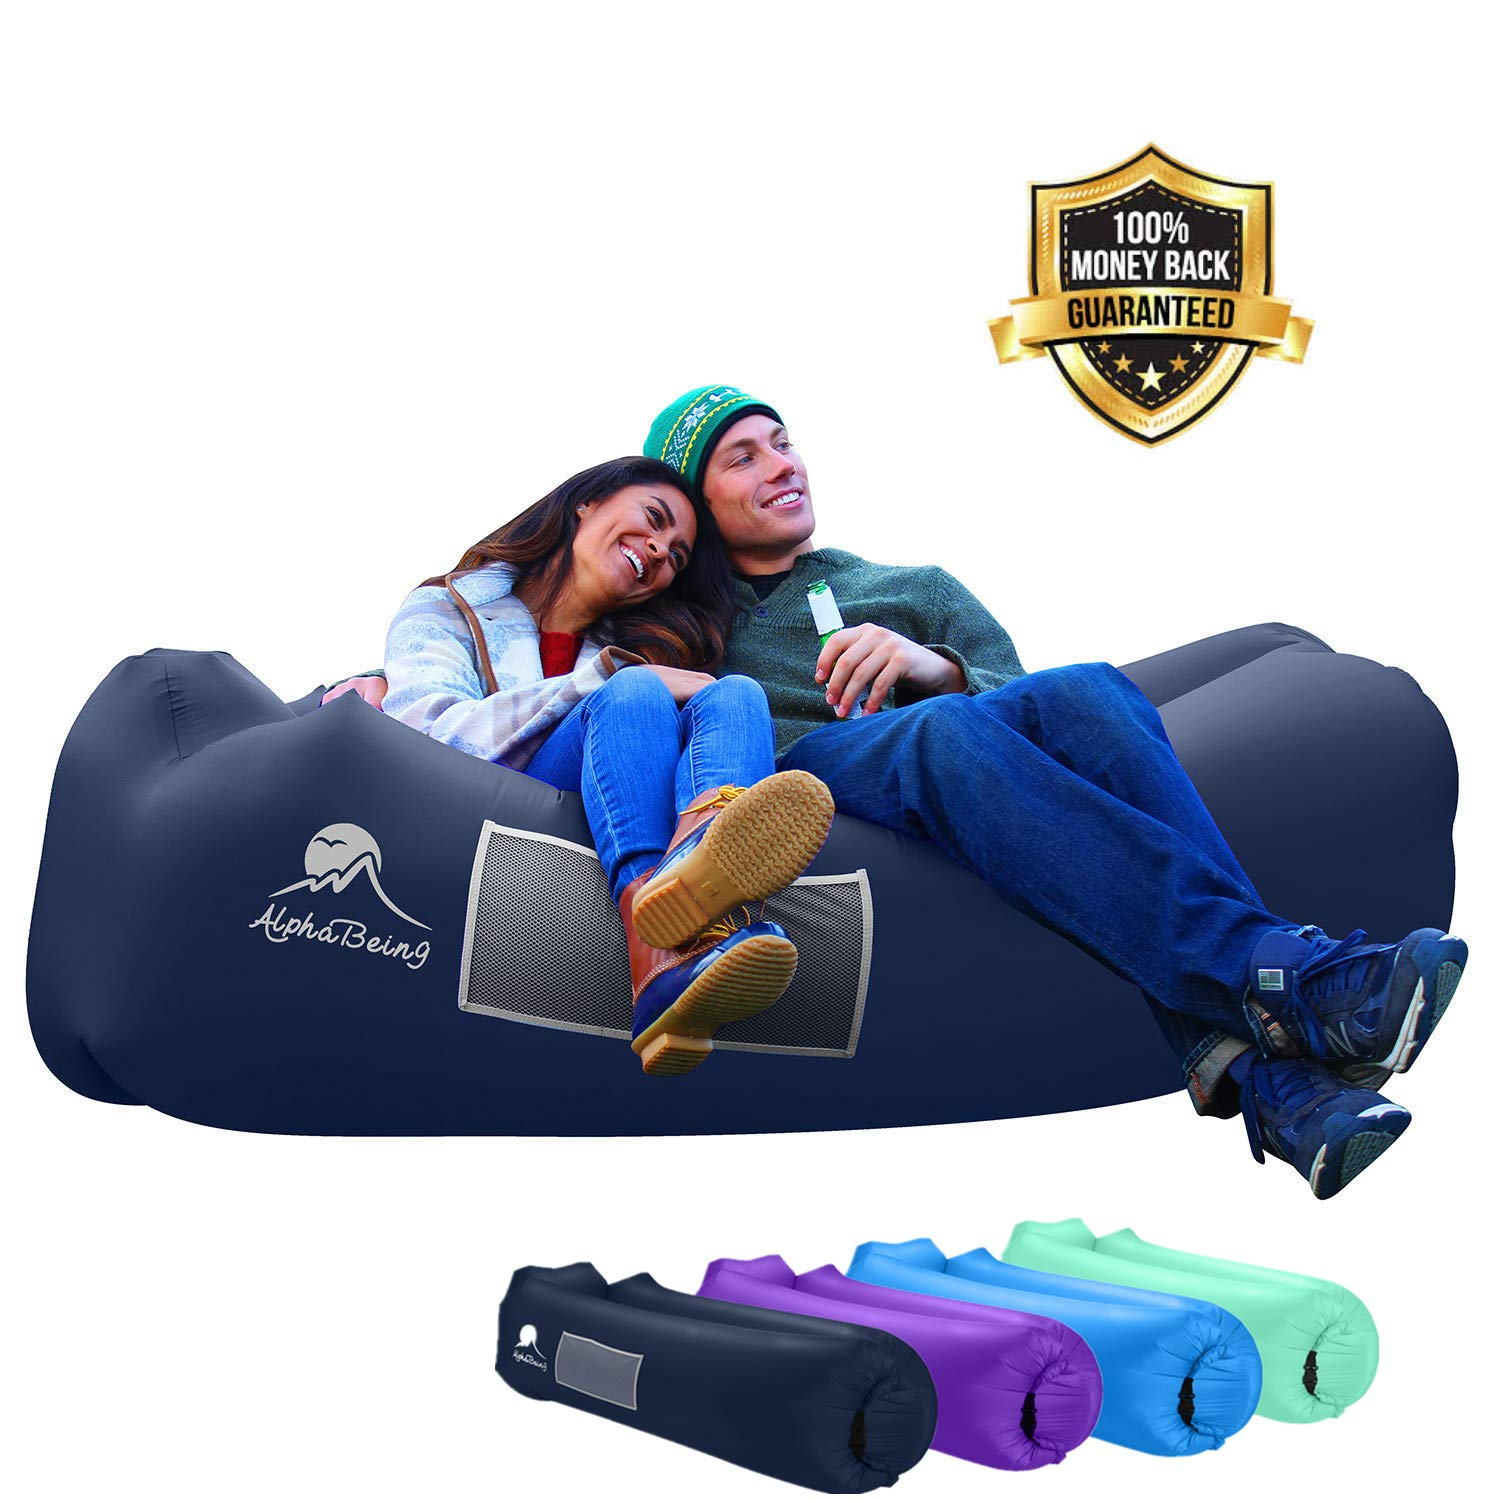 Top 10 Best Inflatable Lounger For Camping 2021 Reviews 4